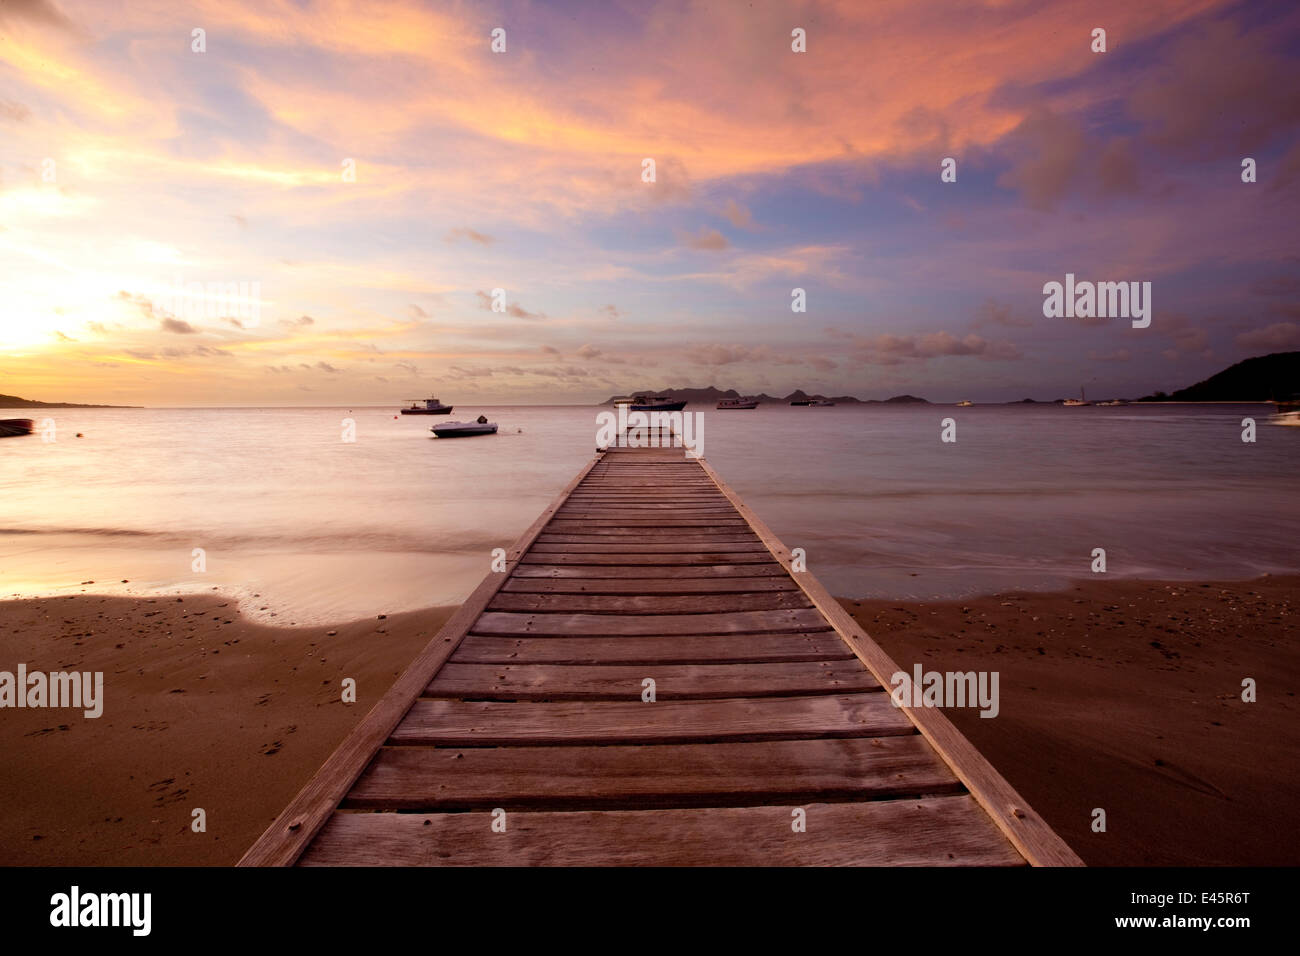 Pontoon at sunset in the Grenadines, Caribbean. February 2010. - Stock Image